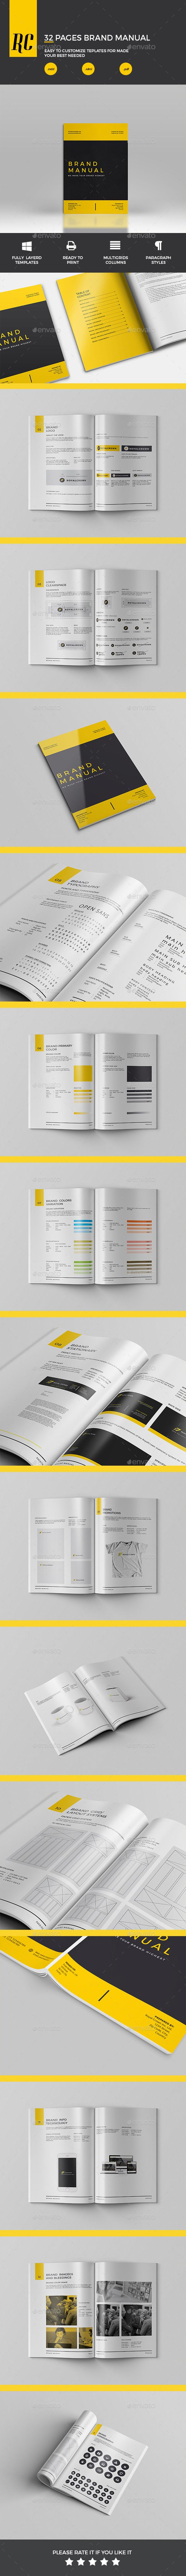 Brand Manual  -  InDesign Template • Only available here! ➝ https://graphicriver.net/item/brand-manual/12340303?ref=pxcr